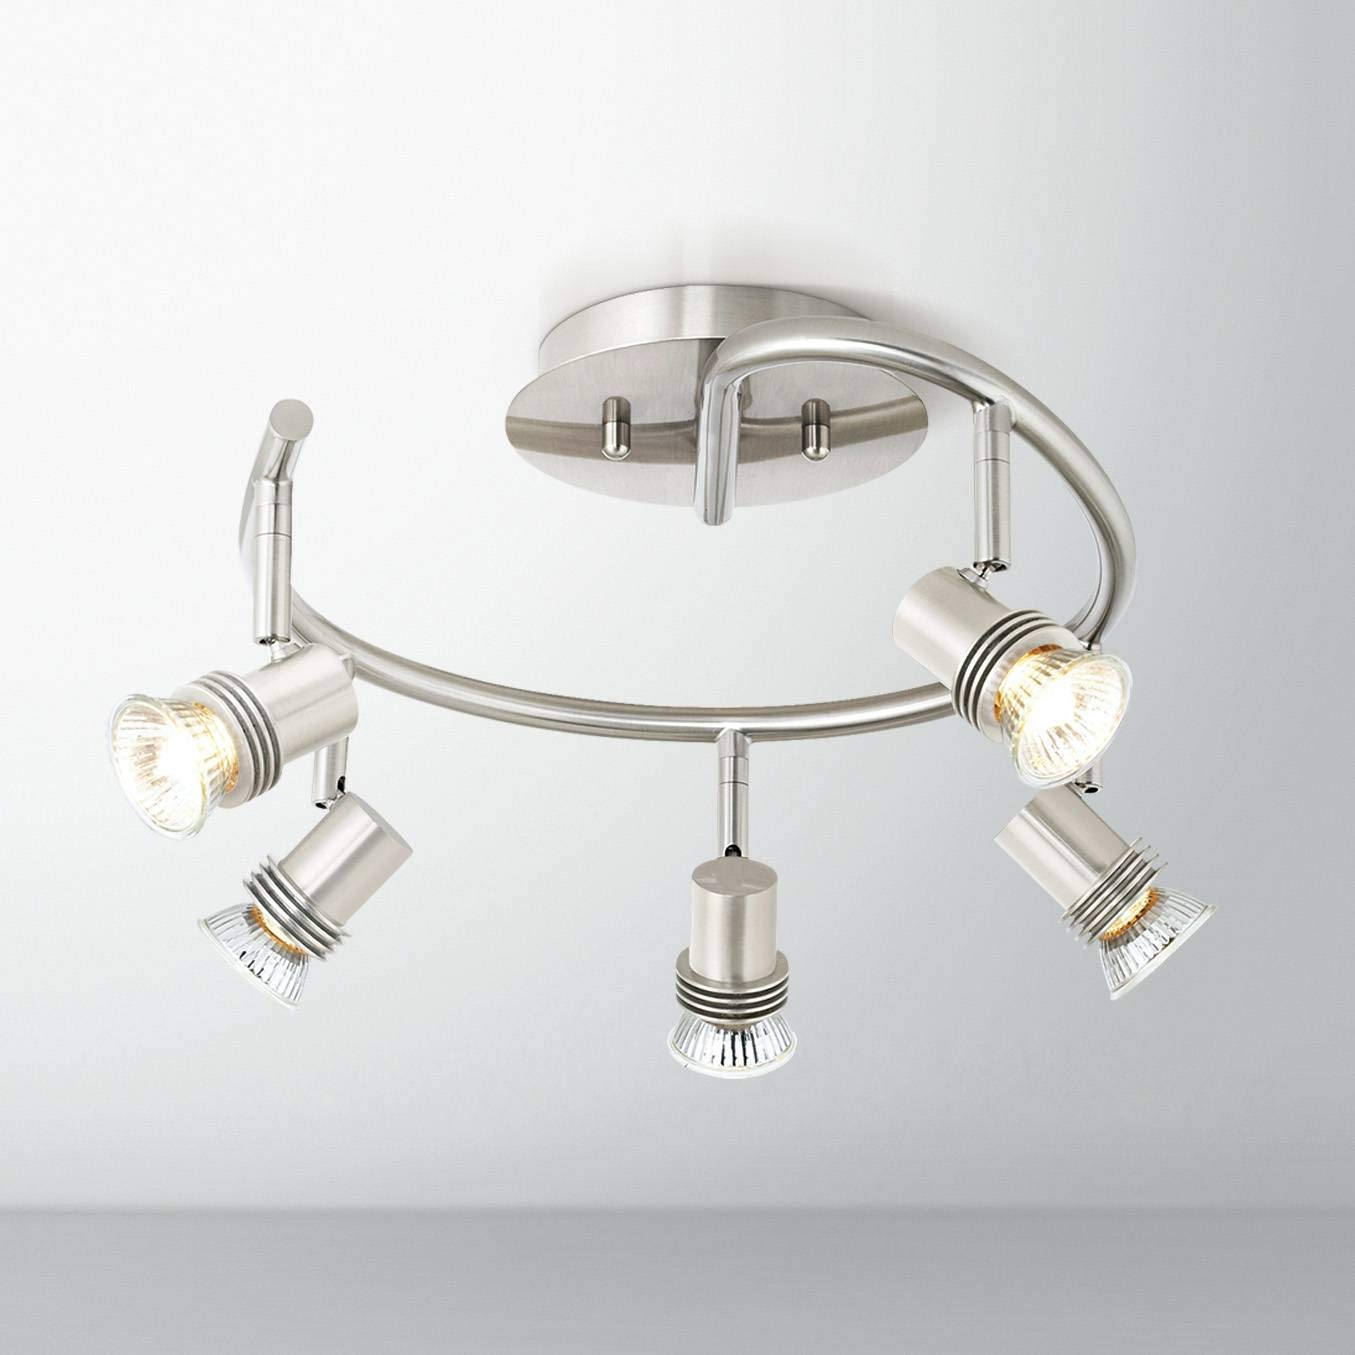 Pro Track 15 3/4'' Wide 5-Light Spiral Track Ceiling Light - Pro Track